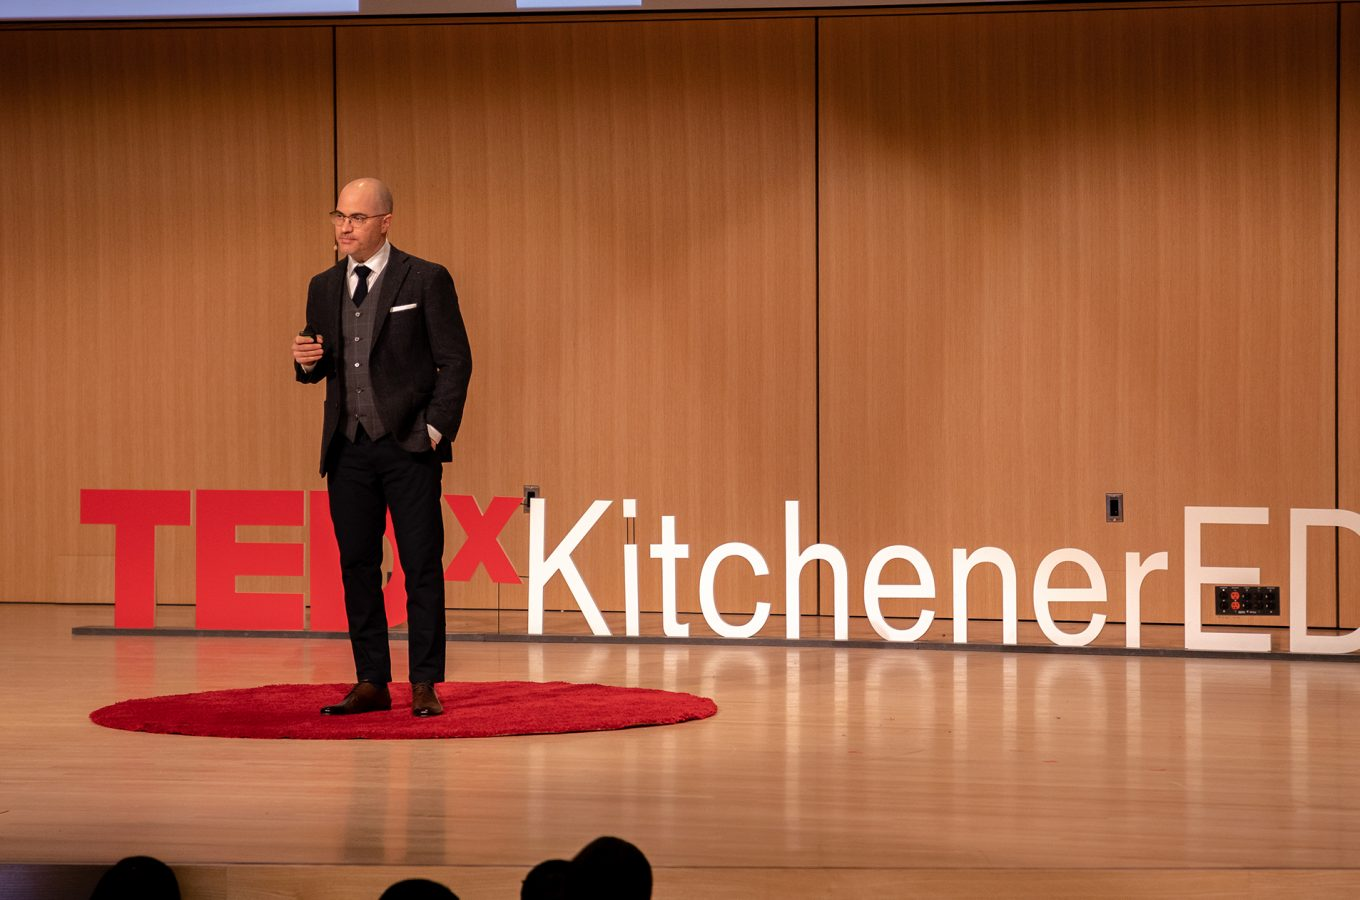 Why e-learning is killing education – Aaron Barth speaking at TEDxKitchenerED